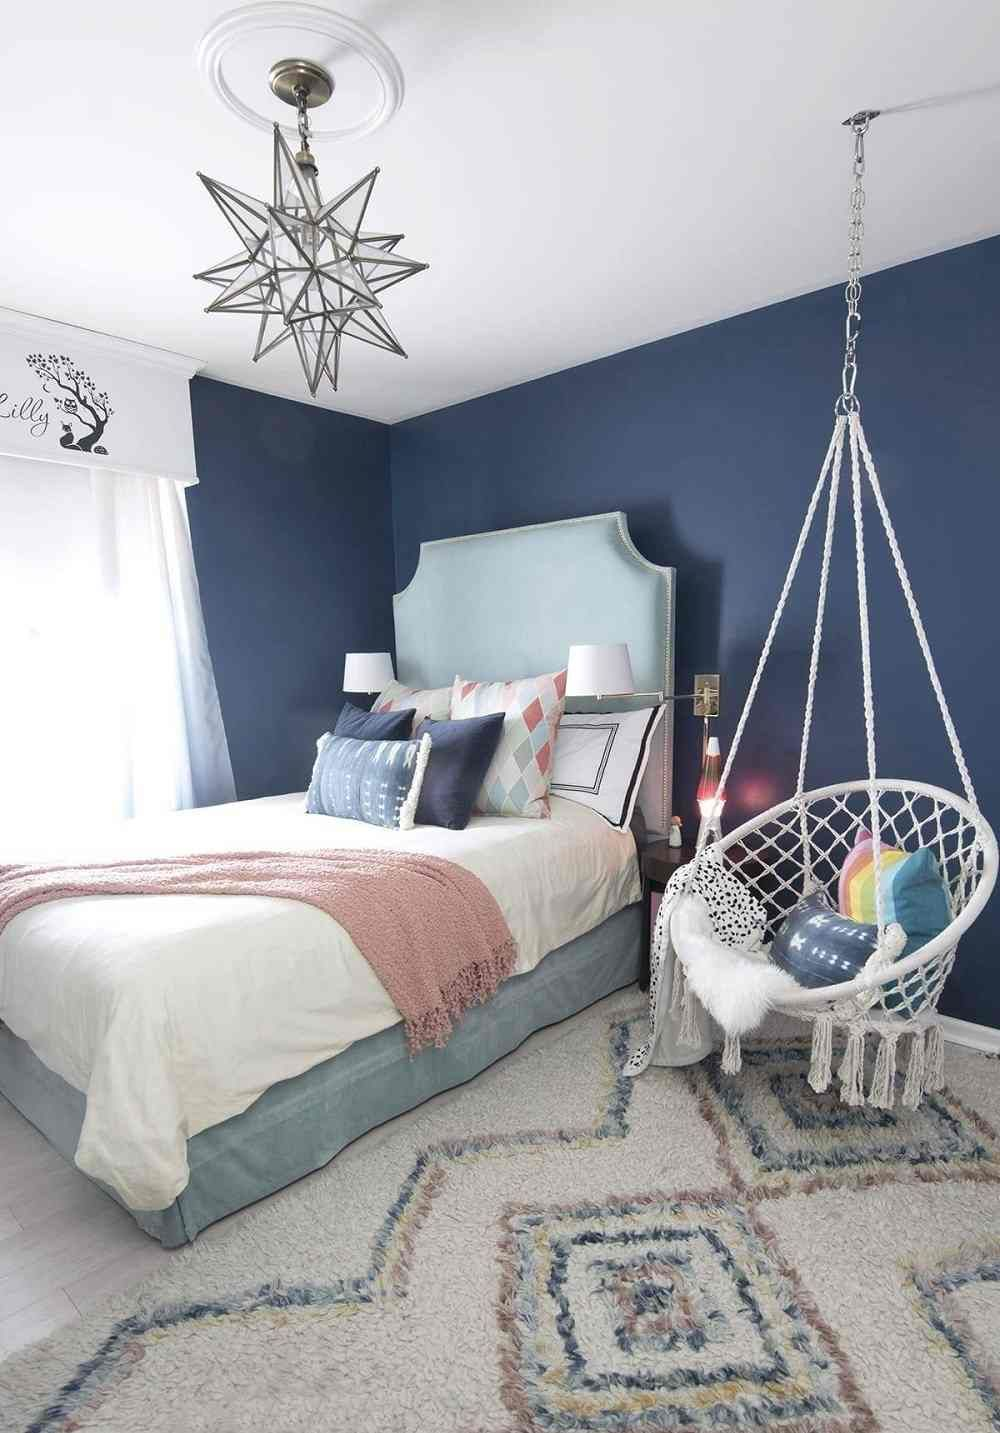 Idees Decochambre Adofille Coussin Chambre Adofille Chambre Bleu Pour Fille Idee Deco Chambre Ado Idee Deco Chambre Ado Fille Deco Chambre Ados